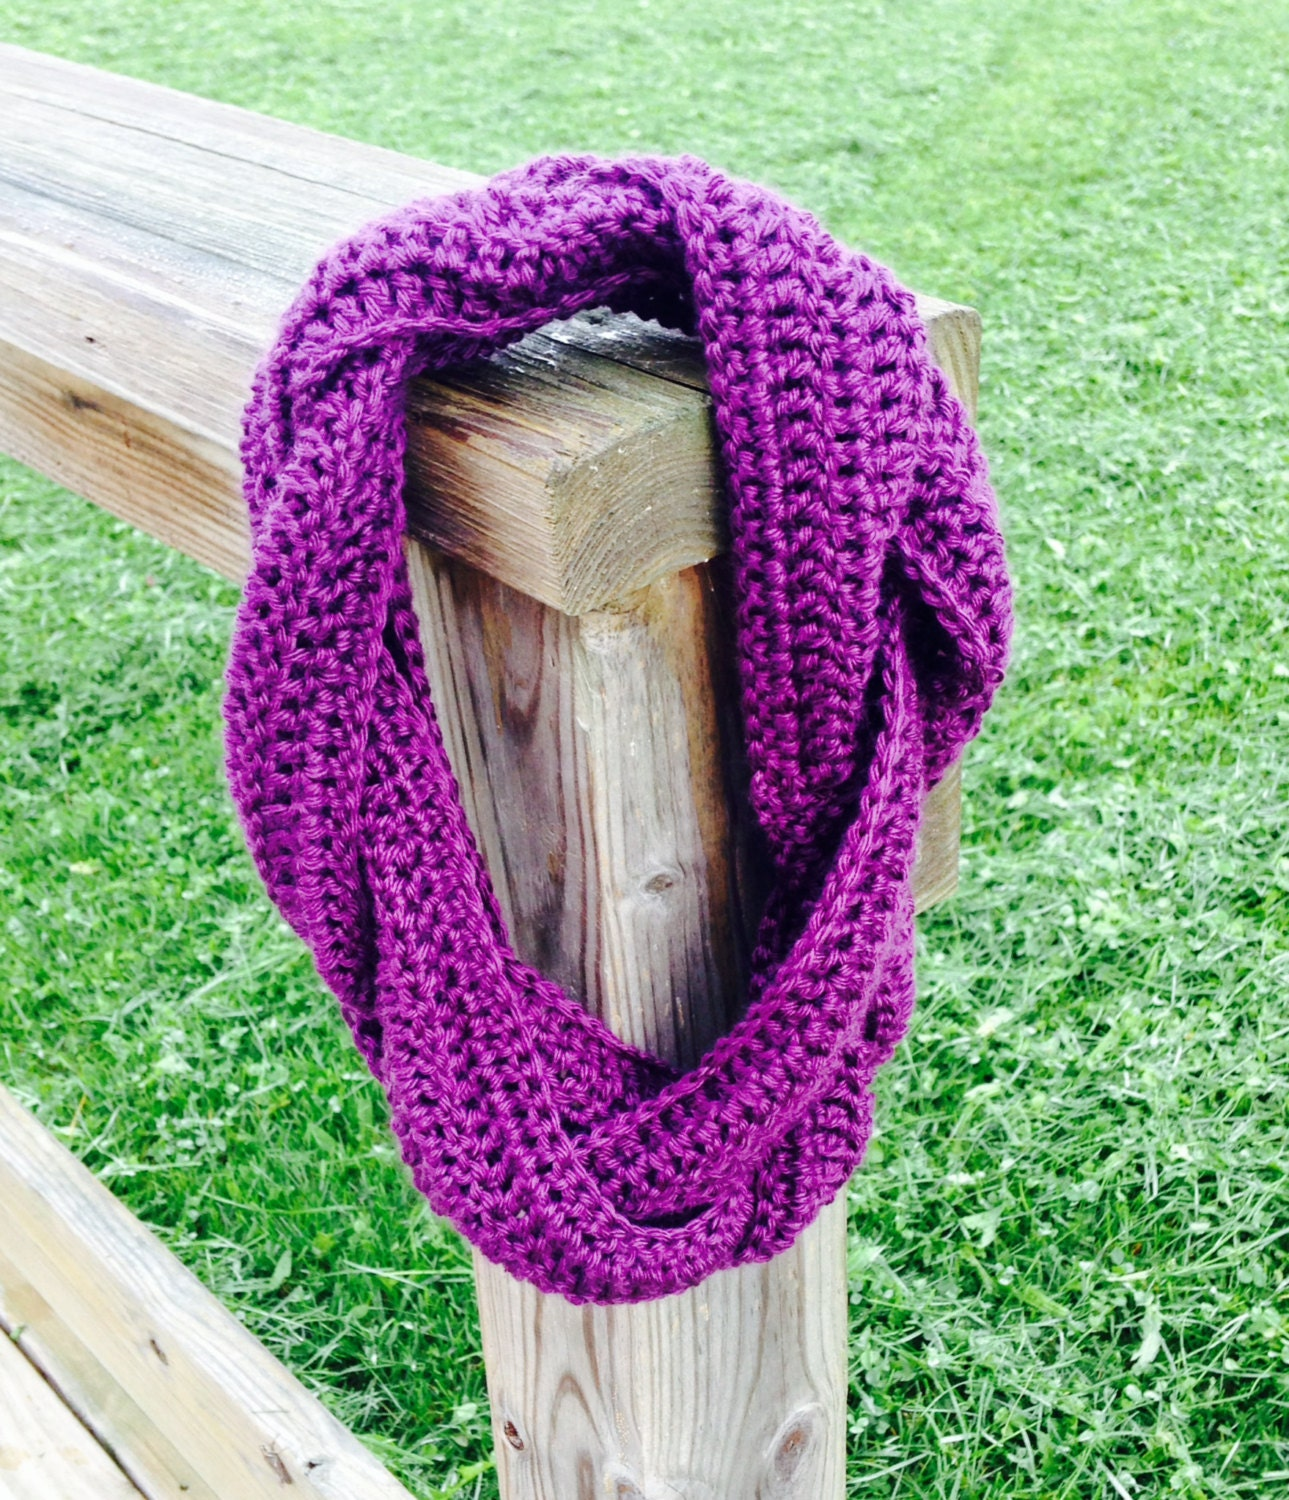 Items similar to Crochet Braided Infinity Scarf on Etsy